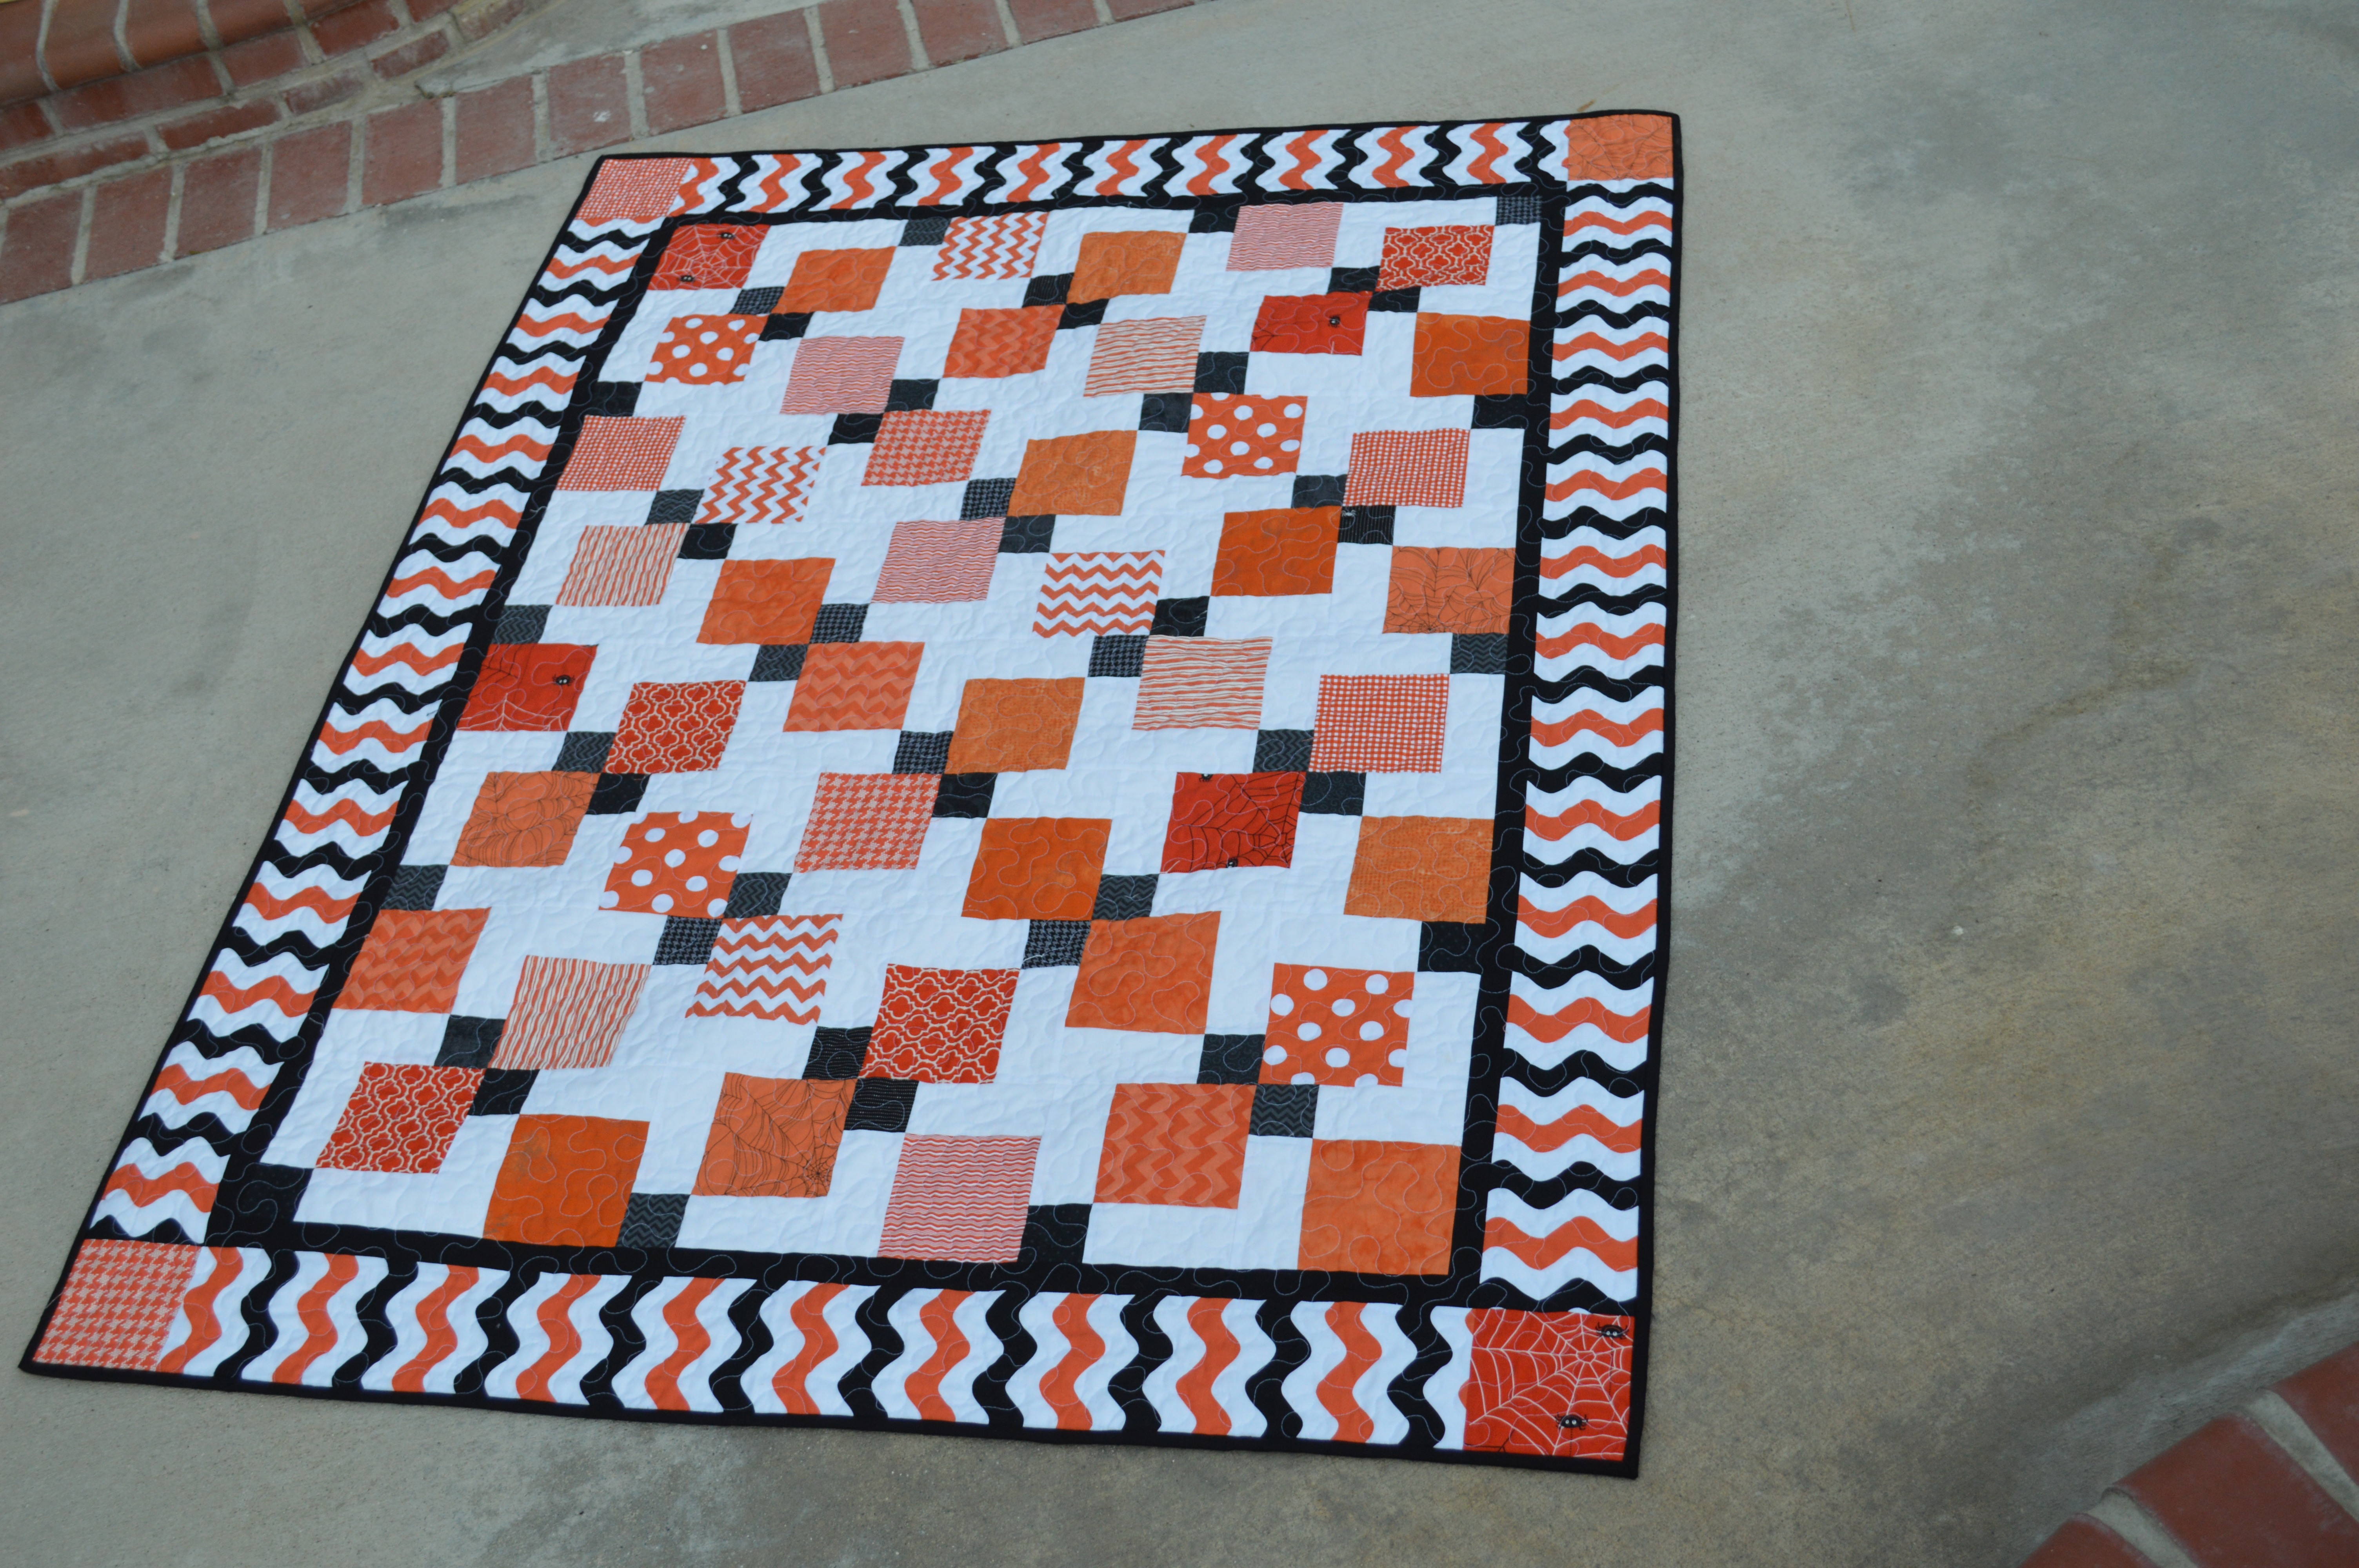 Halloween Disappearing 9-Patch Quilt : disappearing 9 patch quilt tutorial - Adamdwight.com